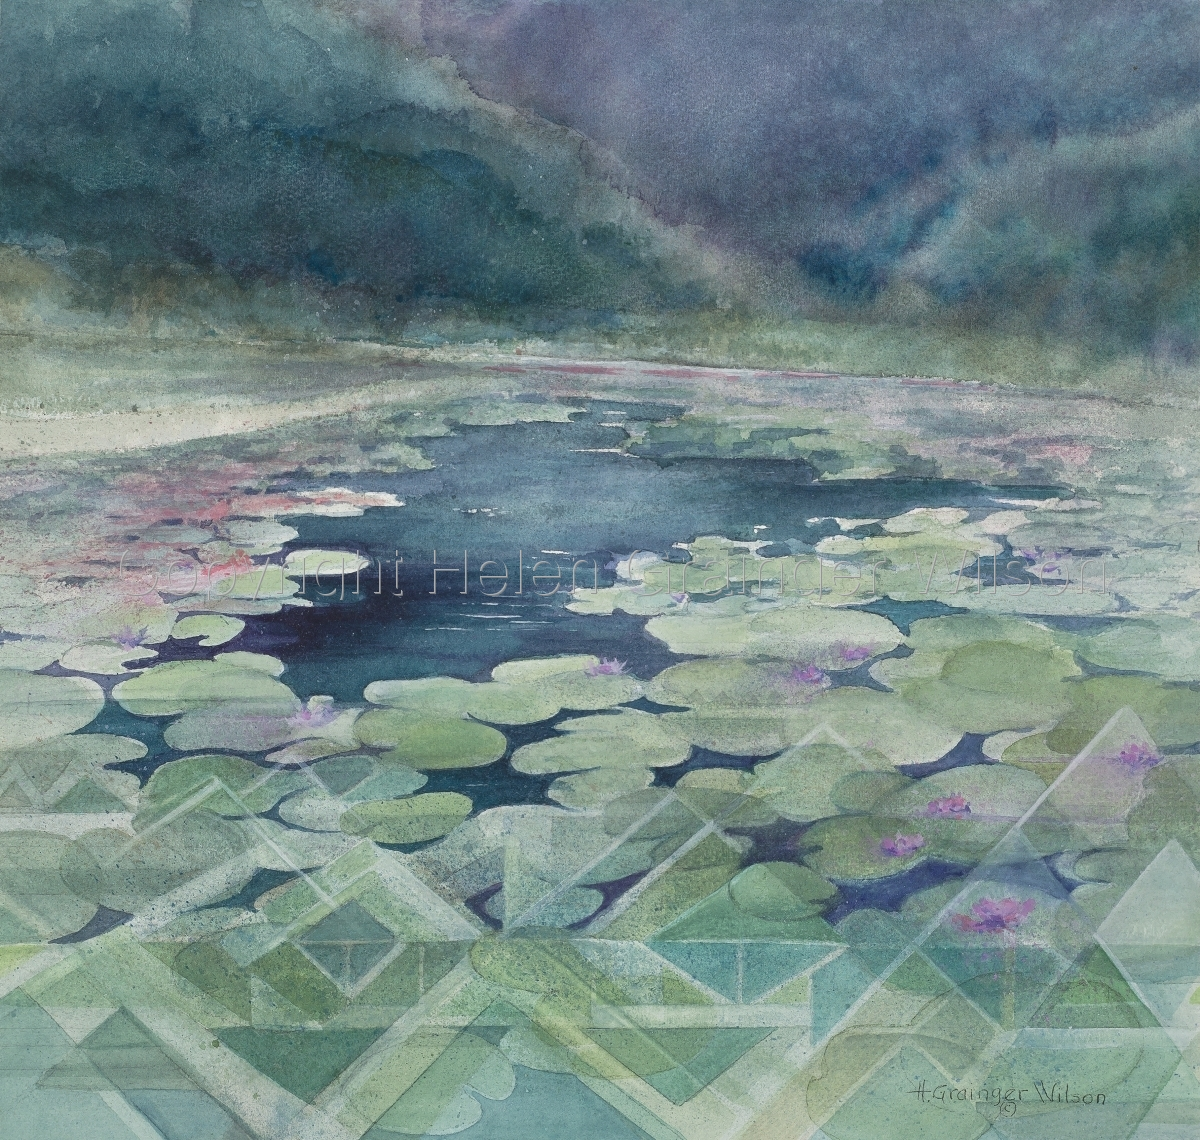 Coeur d'Alene Waterlilies by Helen Grainger Wilson (large view)